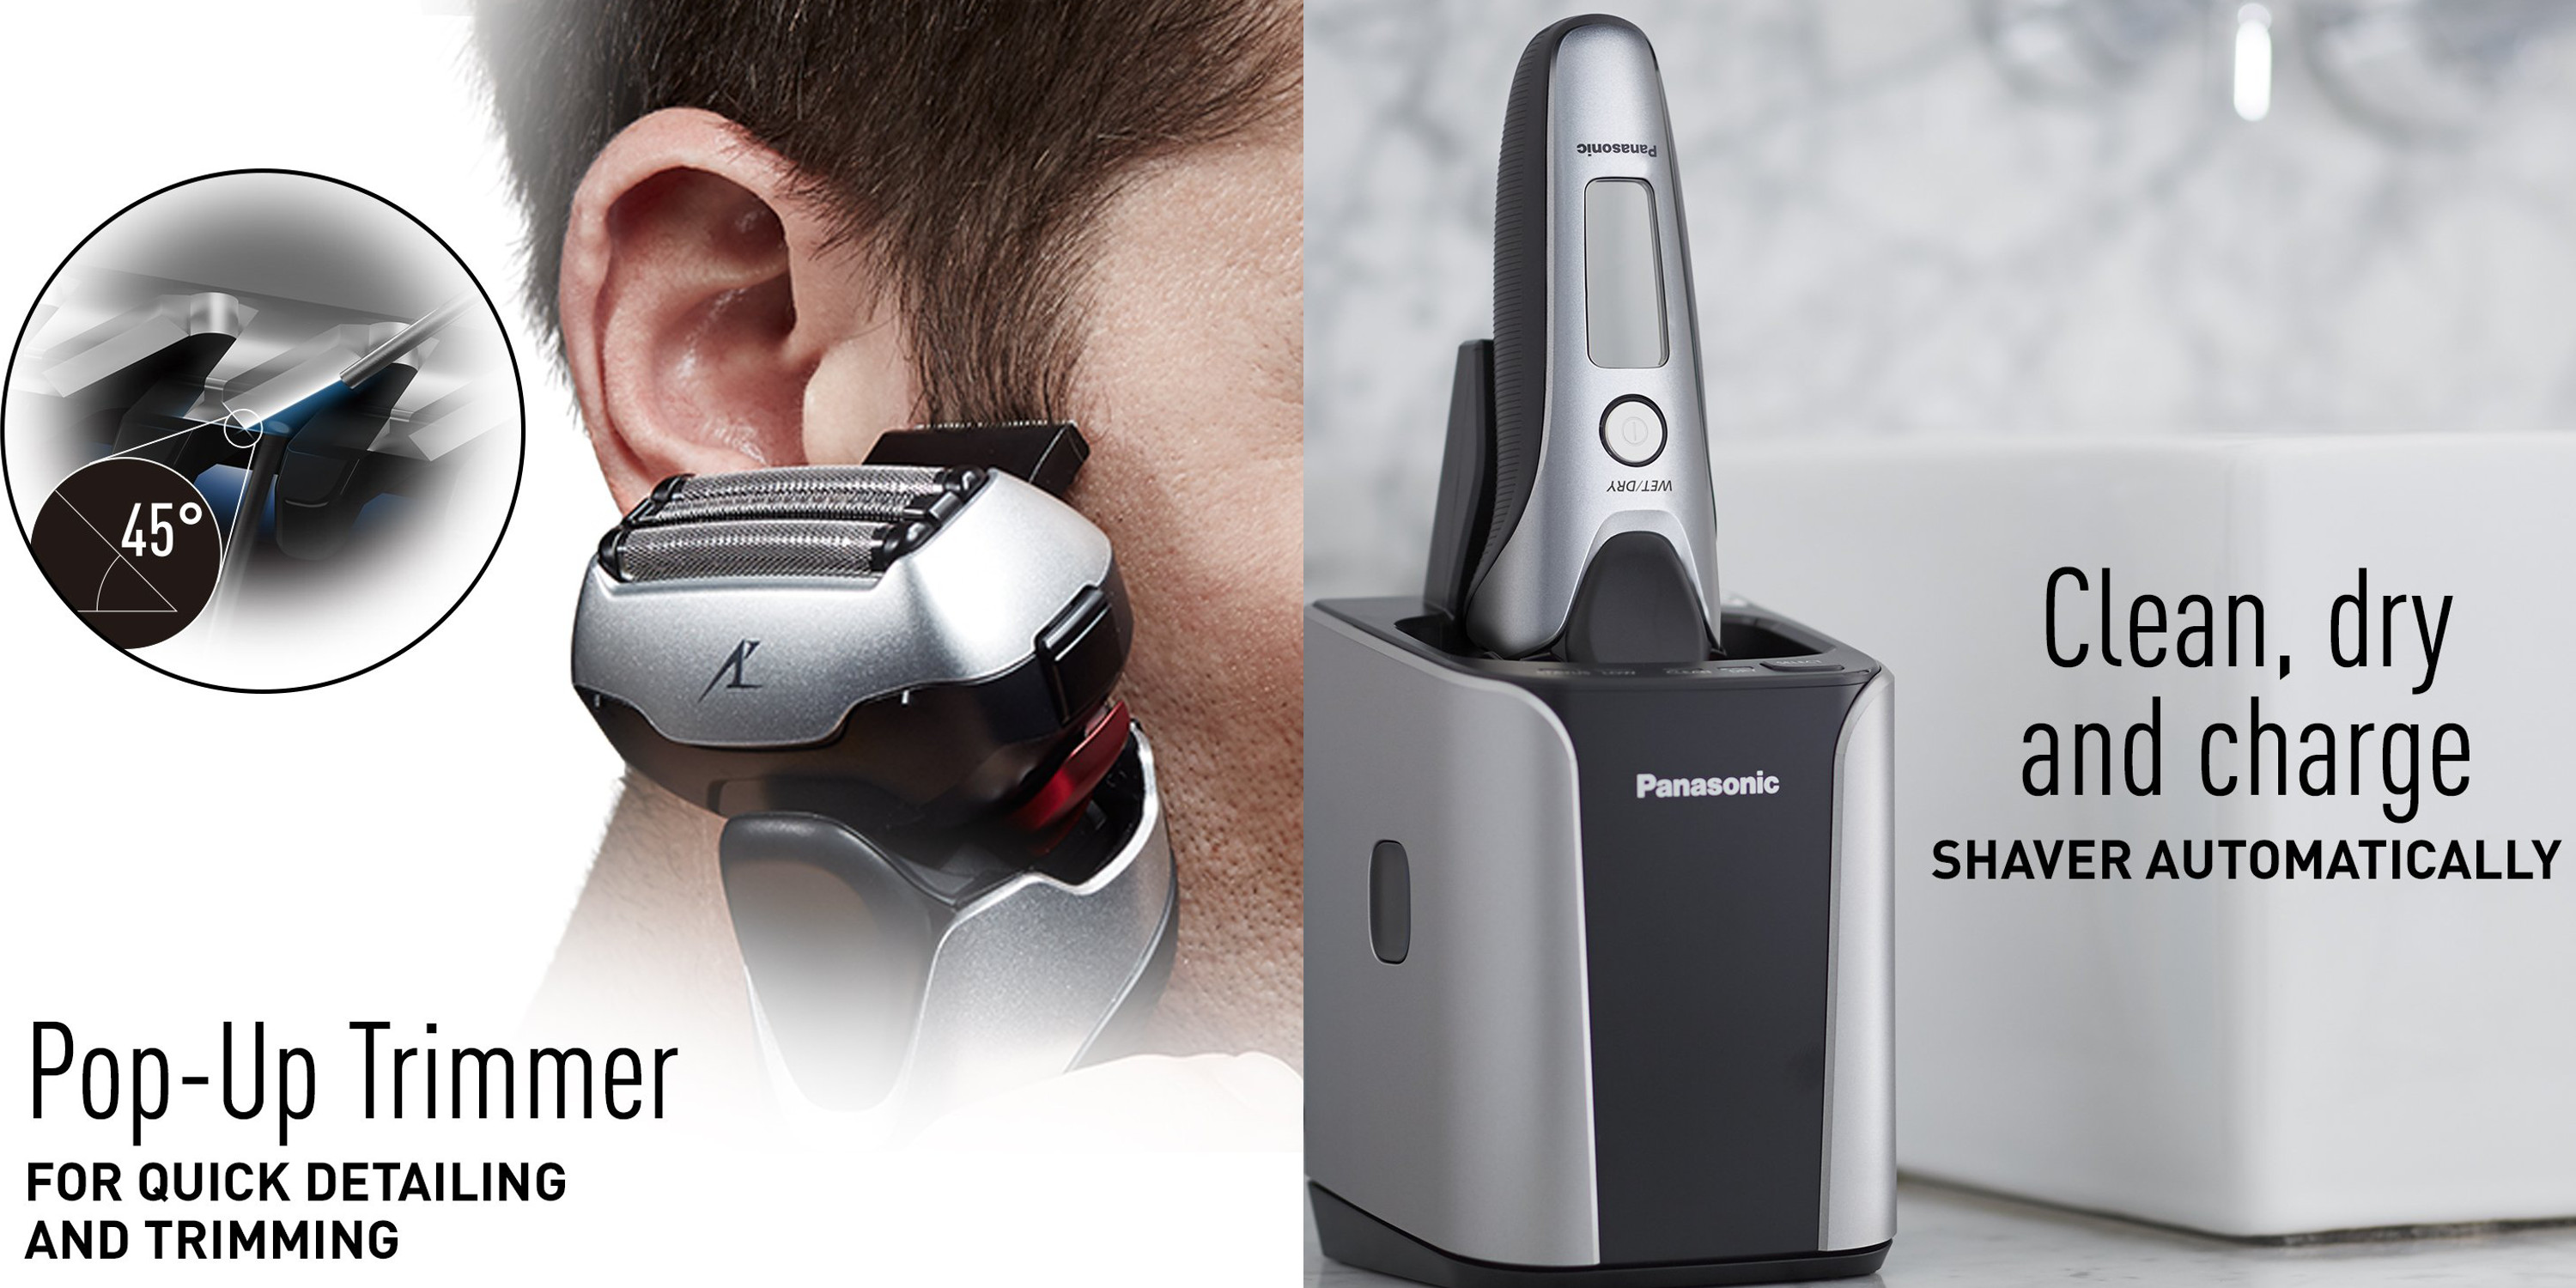 Panasonic's Arc Shaver System w/ charger station hits Amazon low at $98 (Reg. $140+)